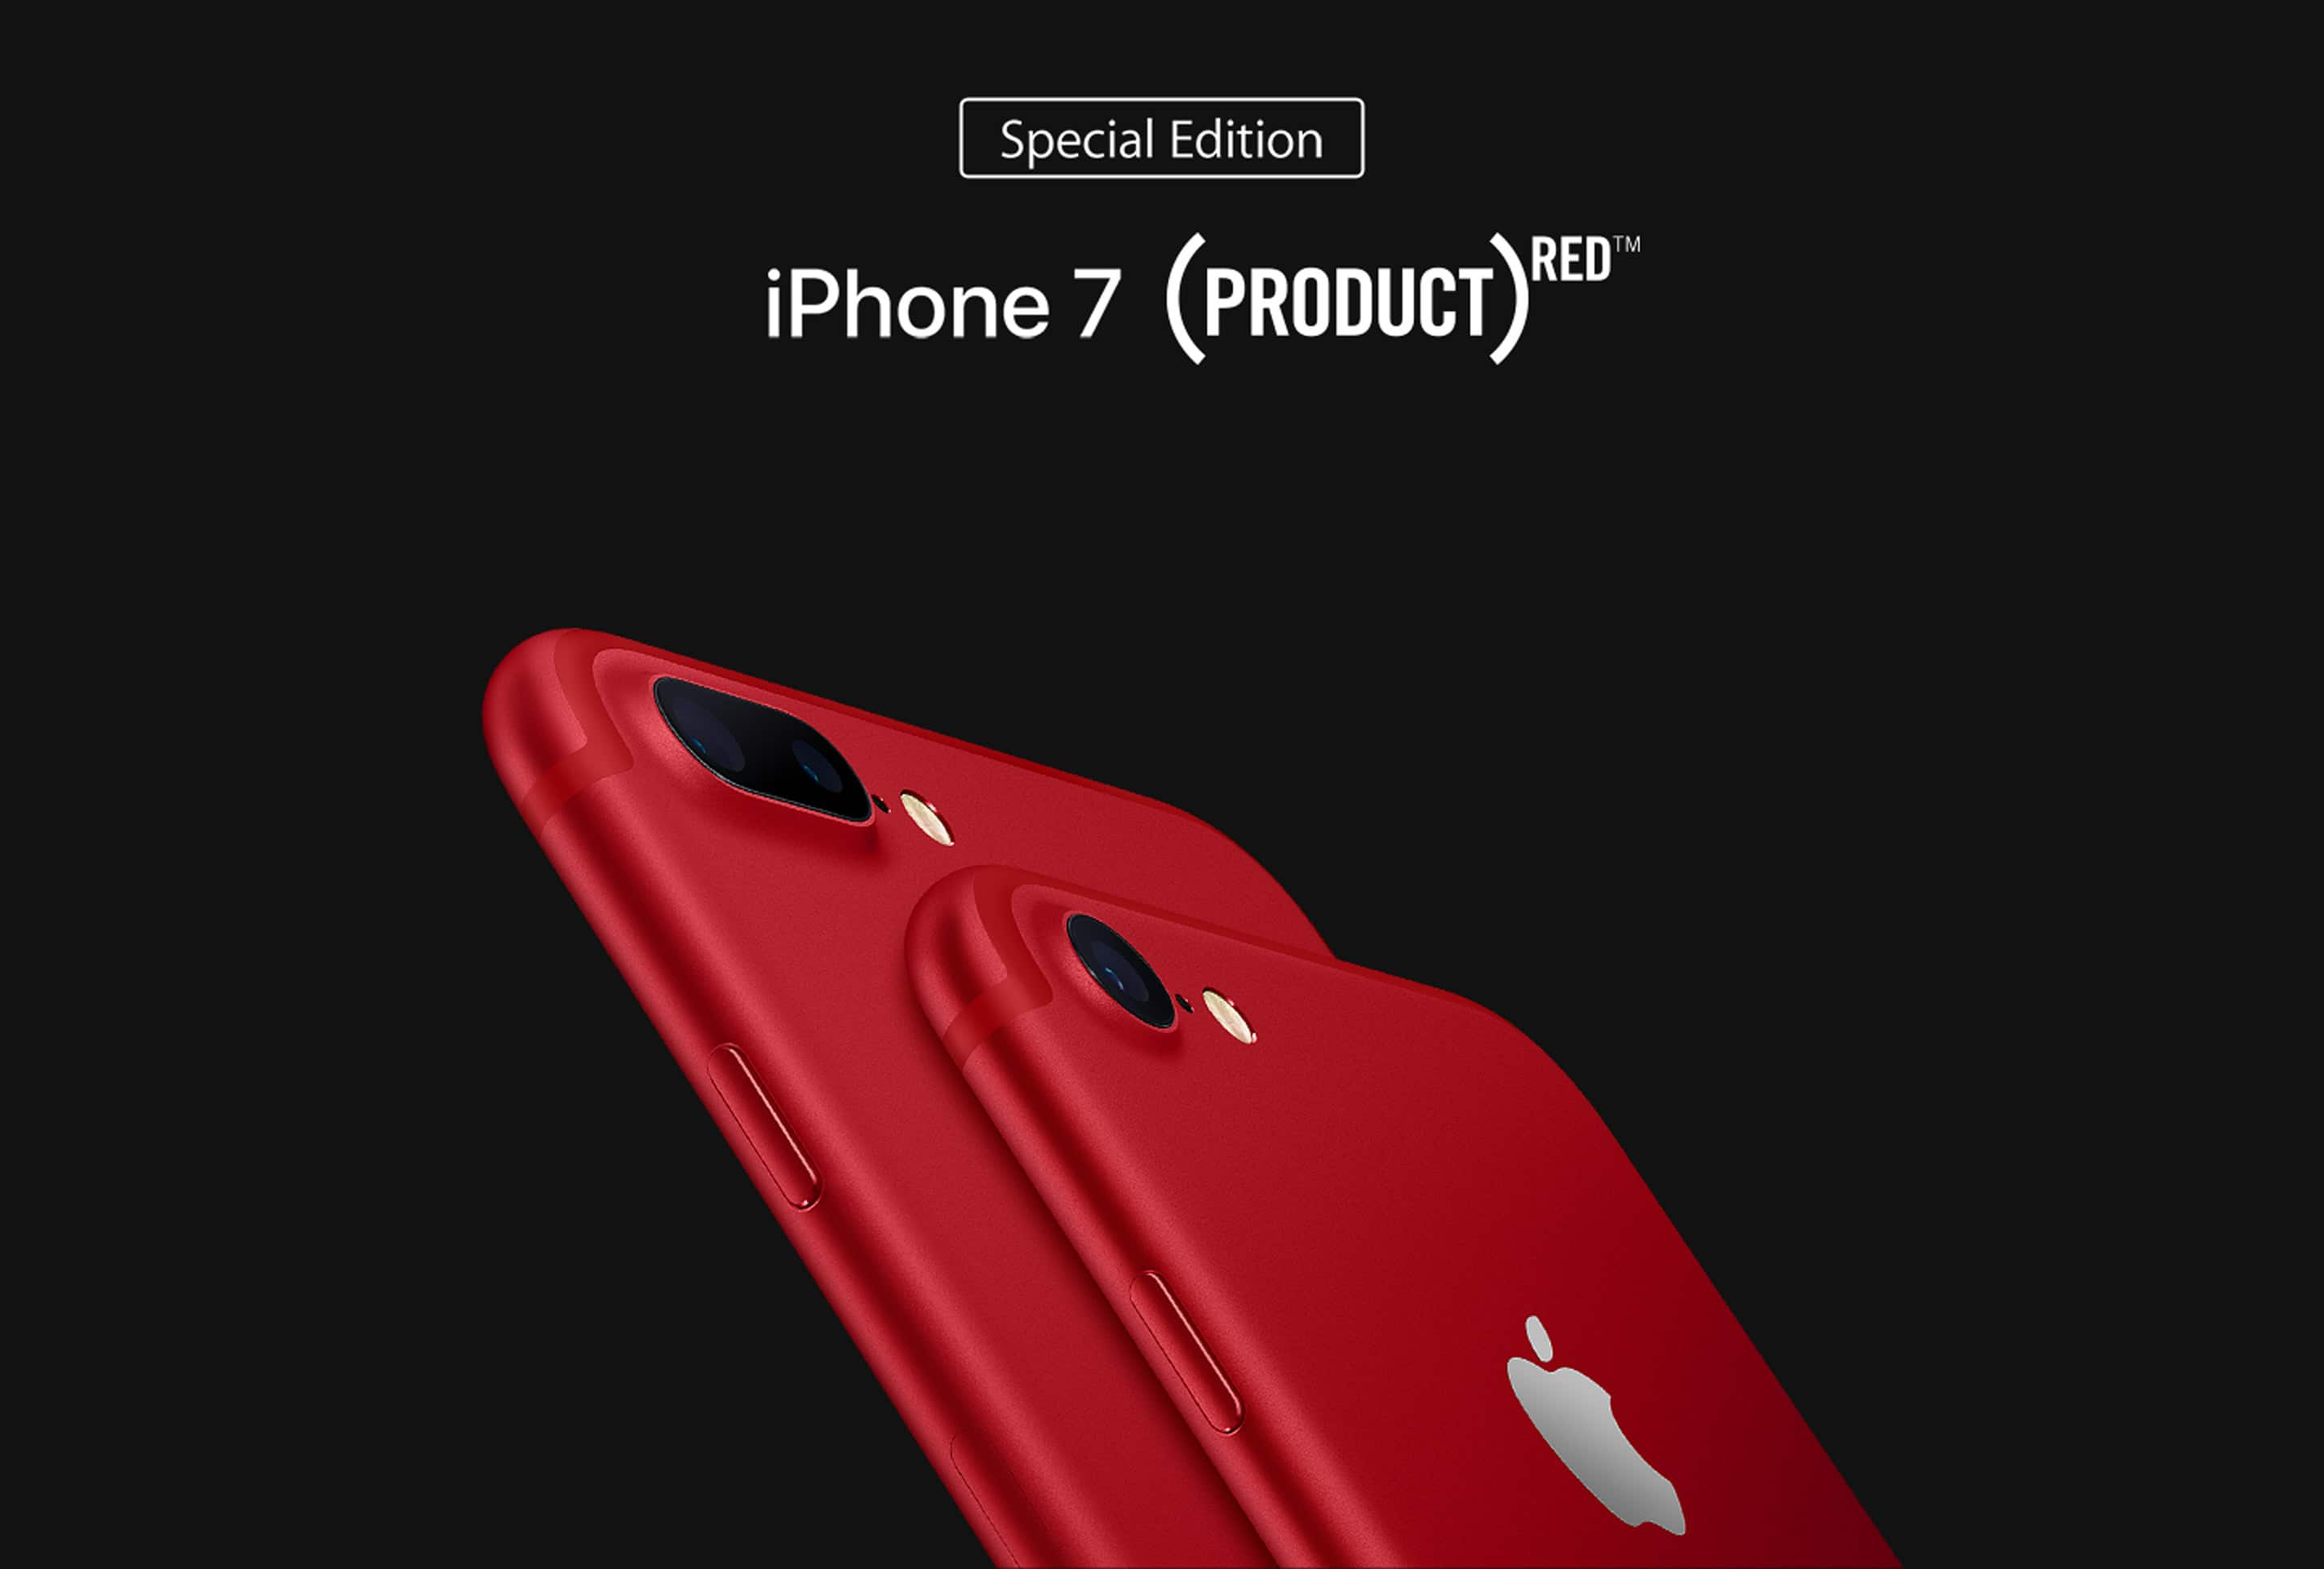 The best performance and battery life ever in an iPhone. Immersive stereo speakers. The brightest, most colorful iPhone display.